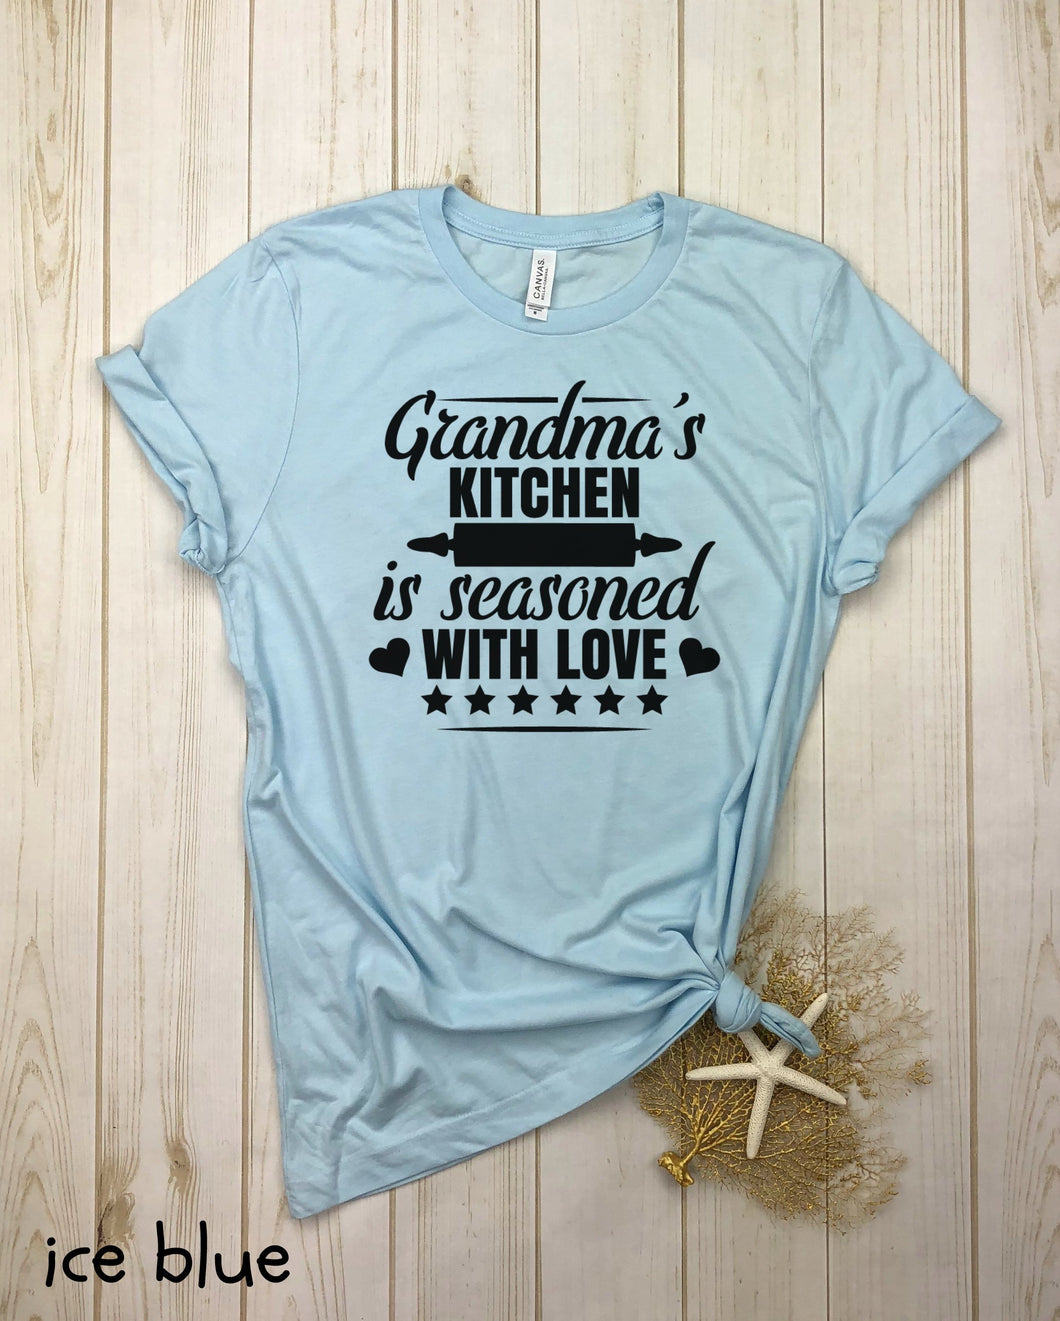 Grandmas Kitchen is Seasoned with Love